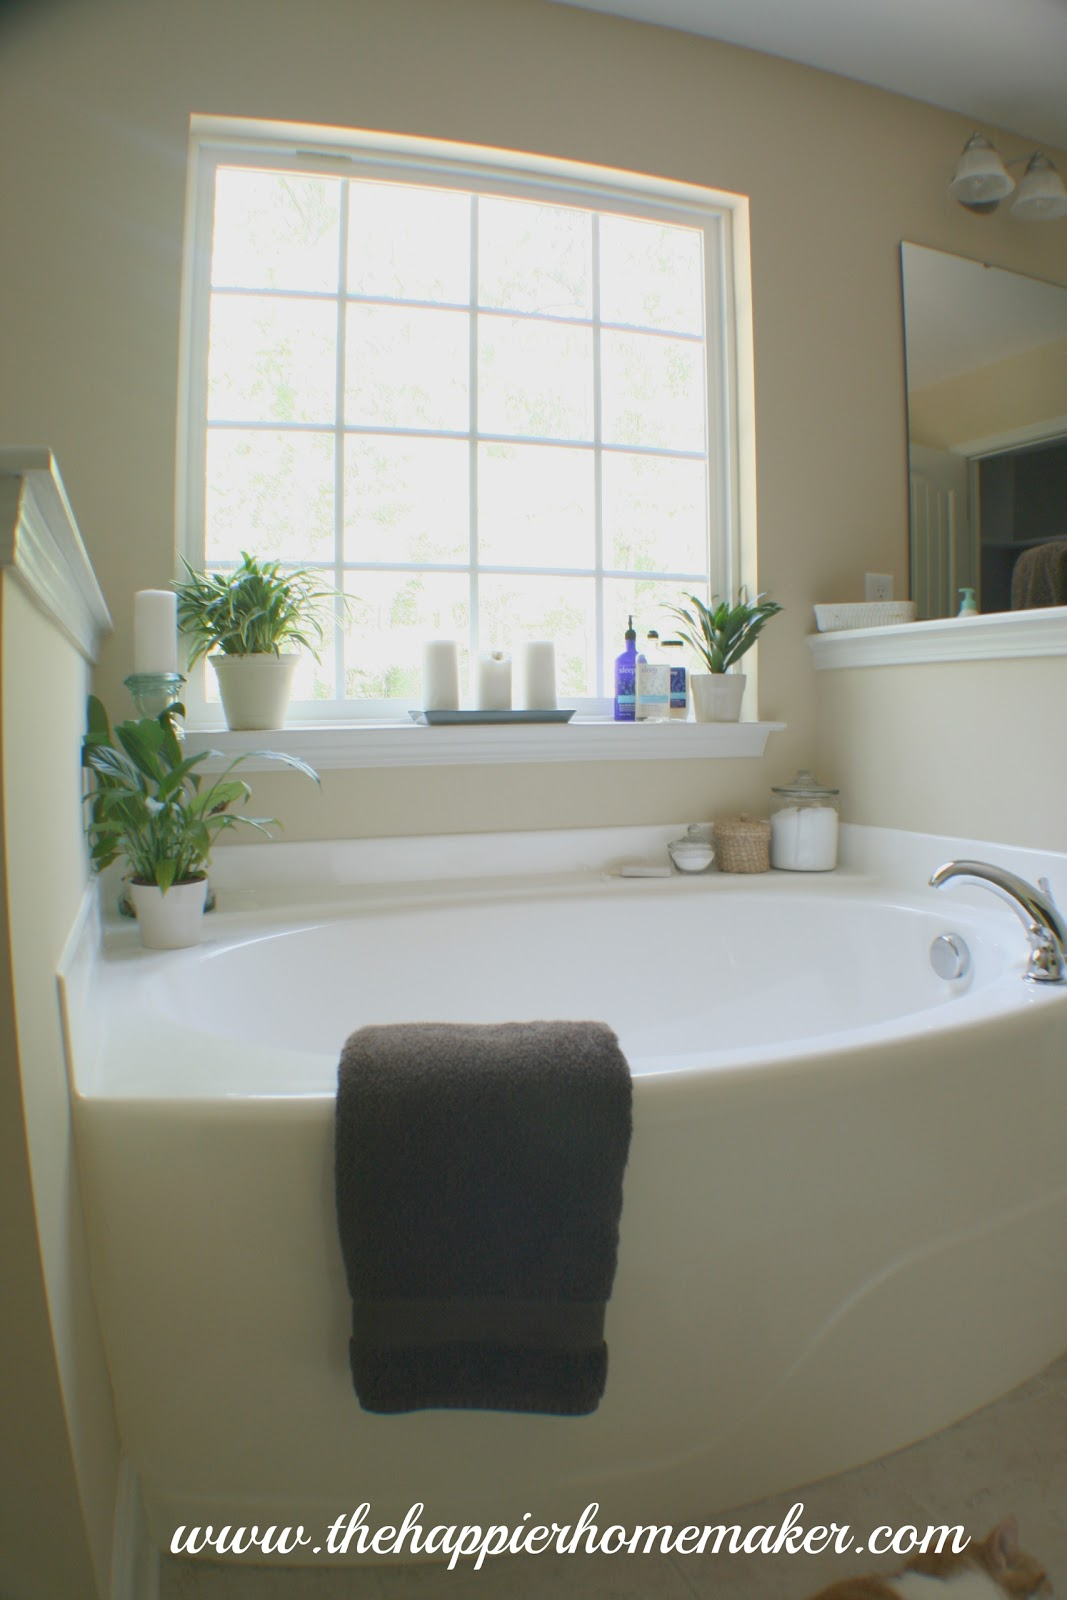 Decorating Around a Bathtub - The Happier Homemaker | The Happier ...